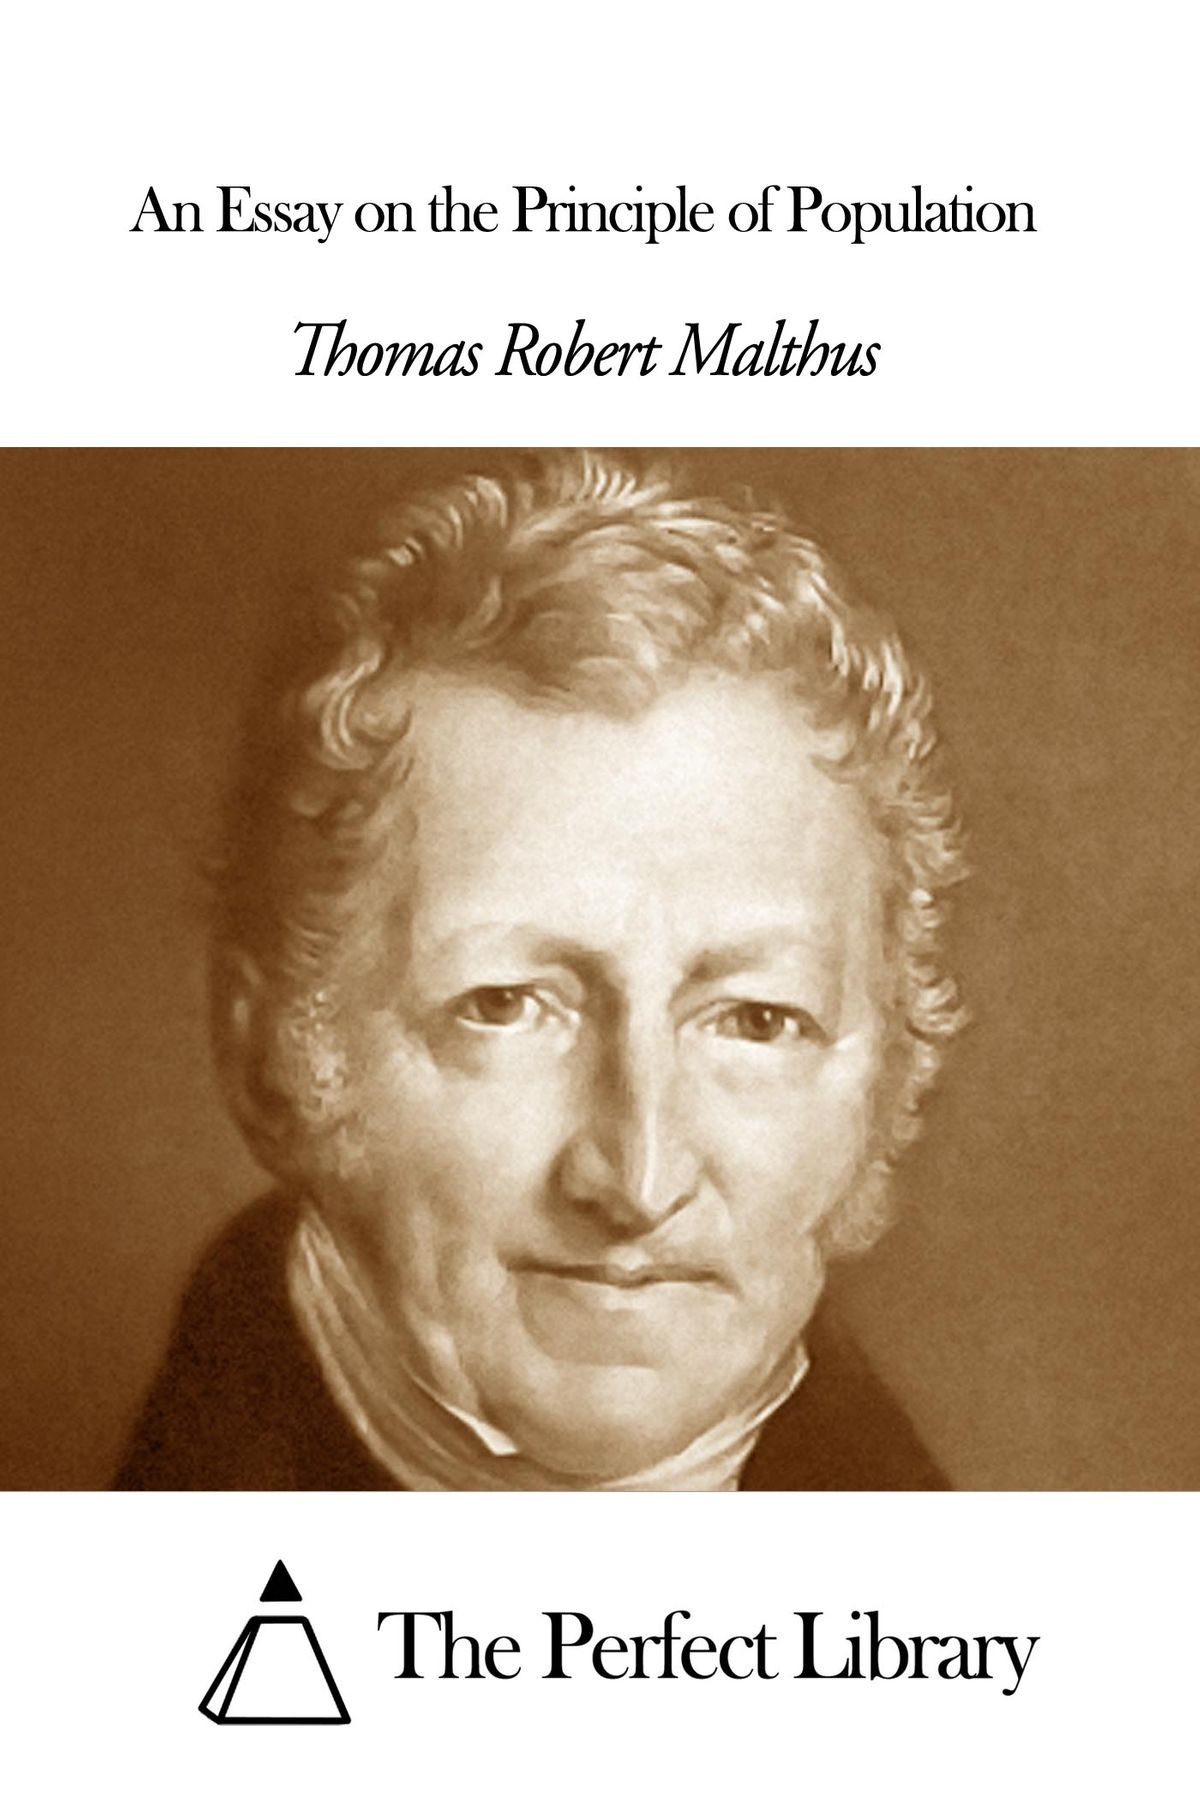 019 Essay Example An On The Principle Of Population Fascinating By Thomas Malthus Pdf In Concluded Which Following Full